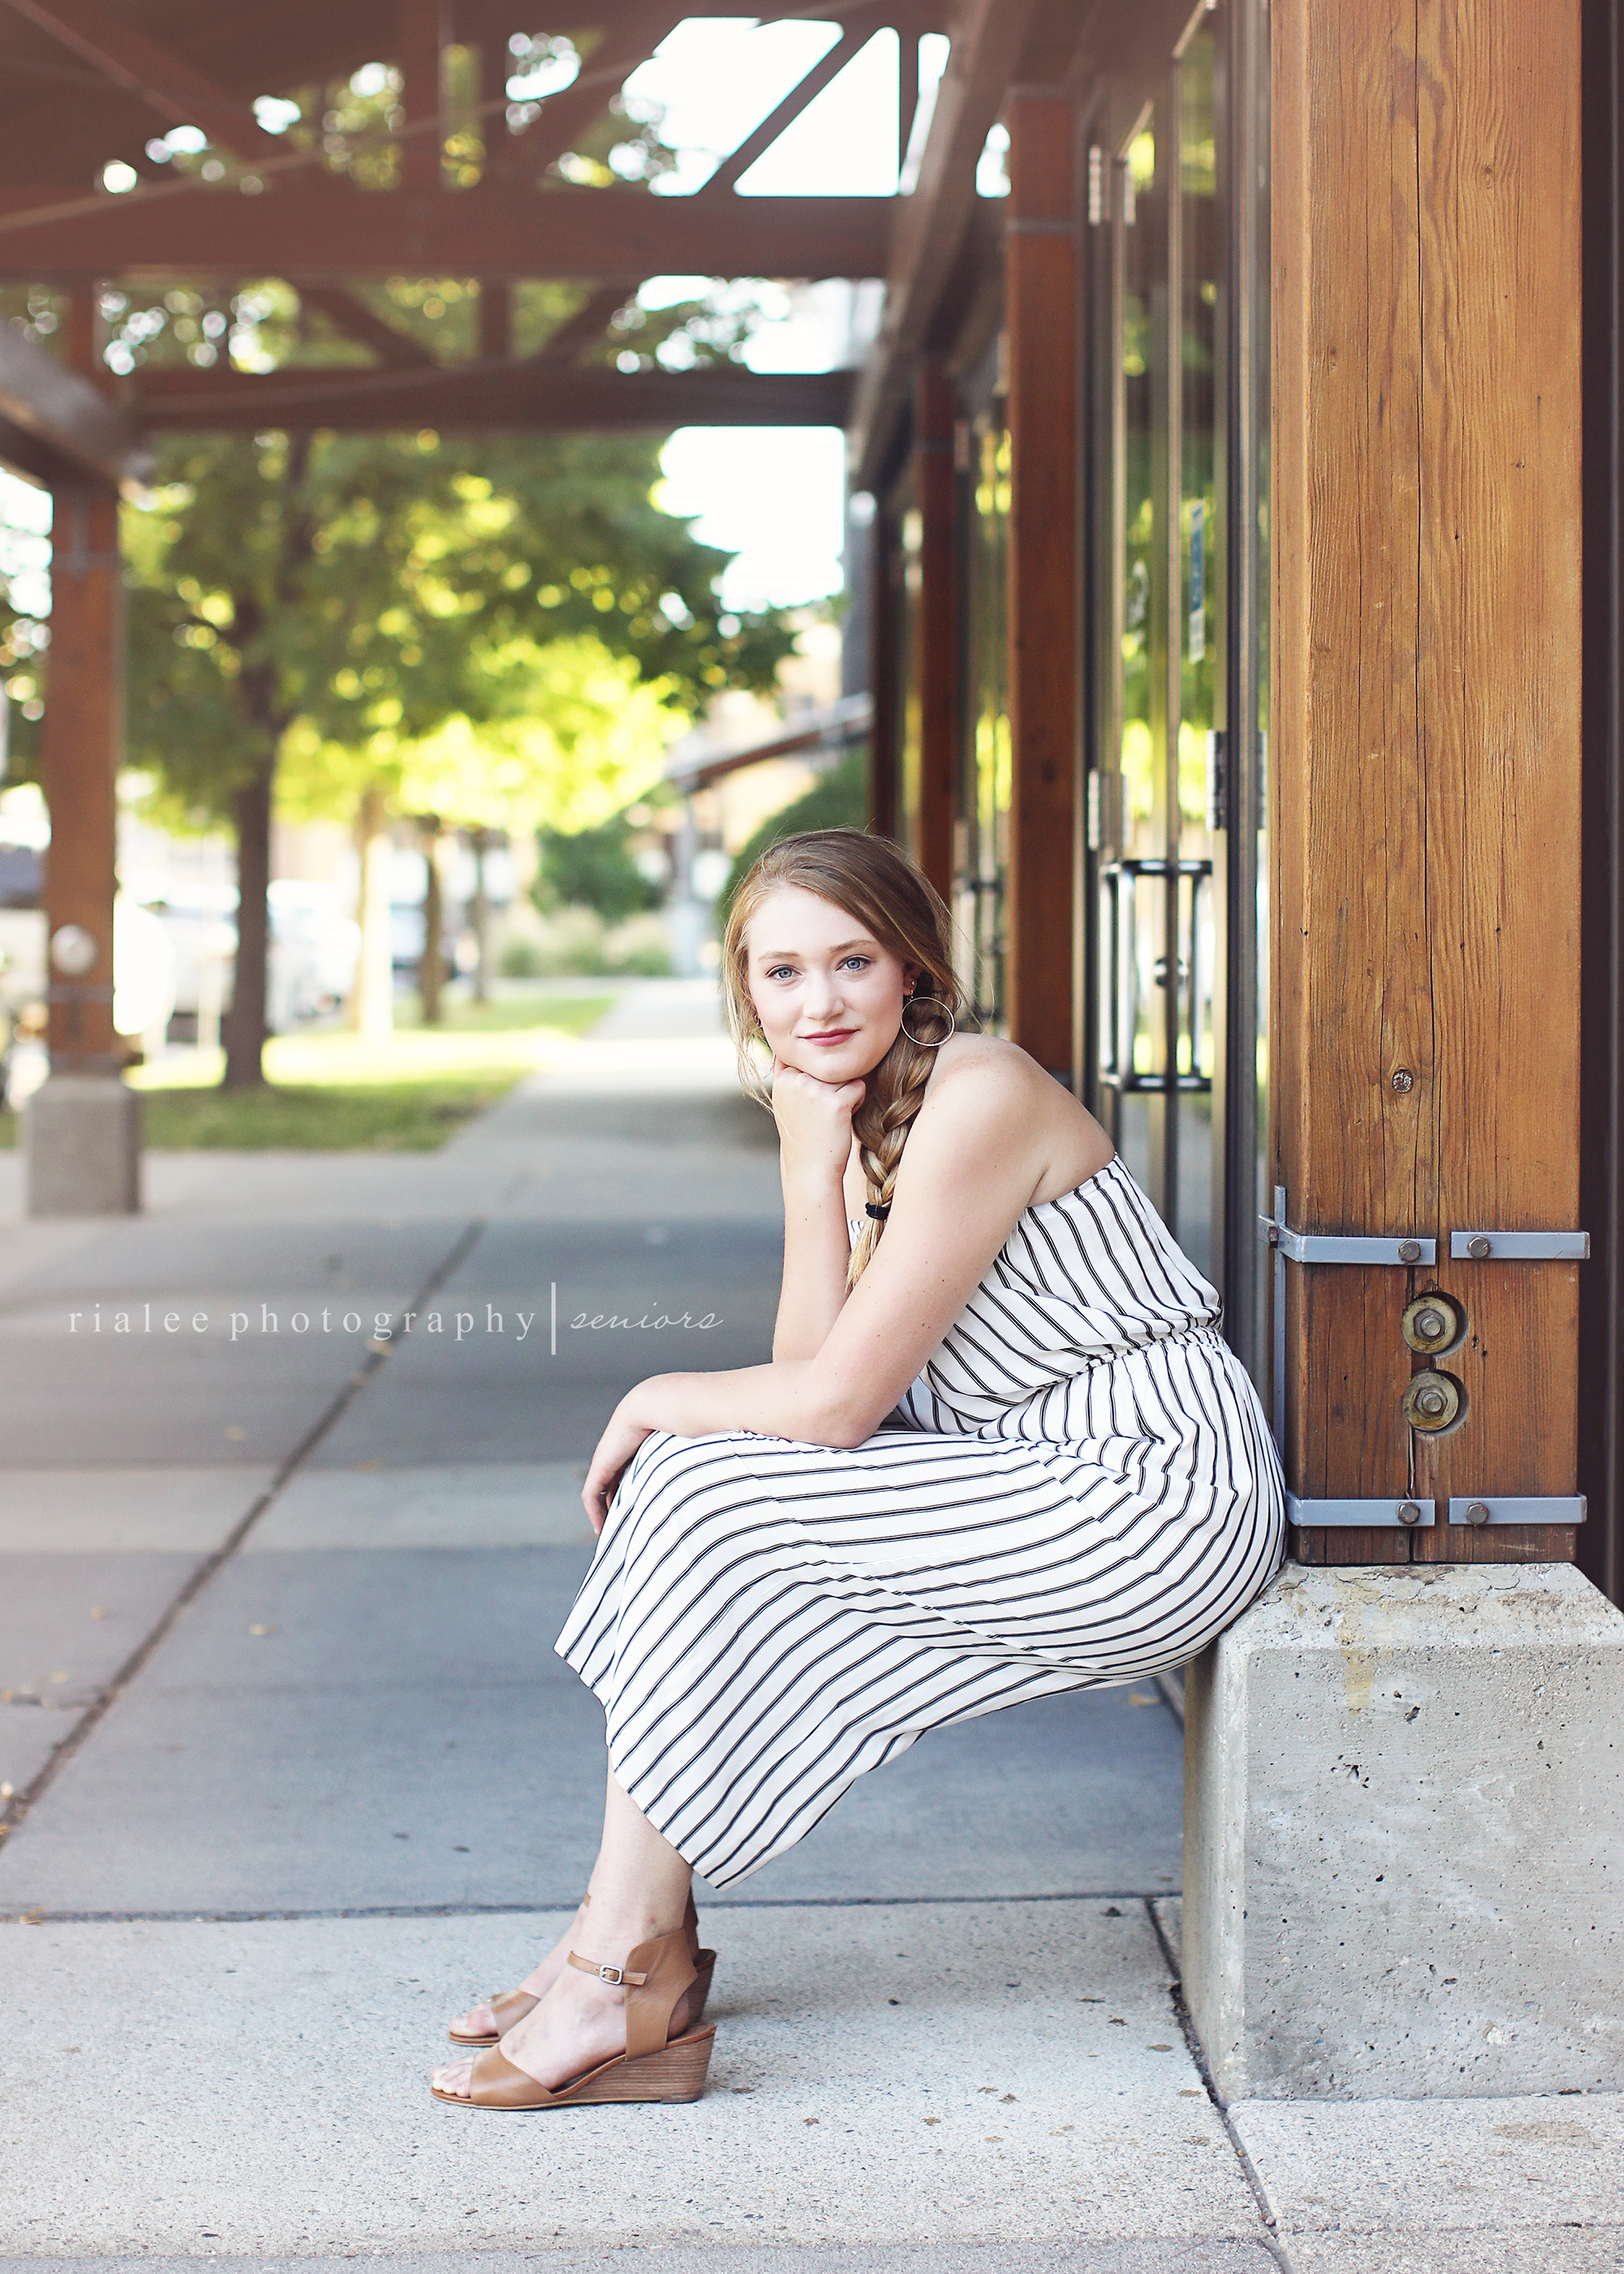 moorheadseniorphotos.jpg